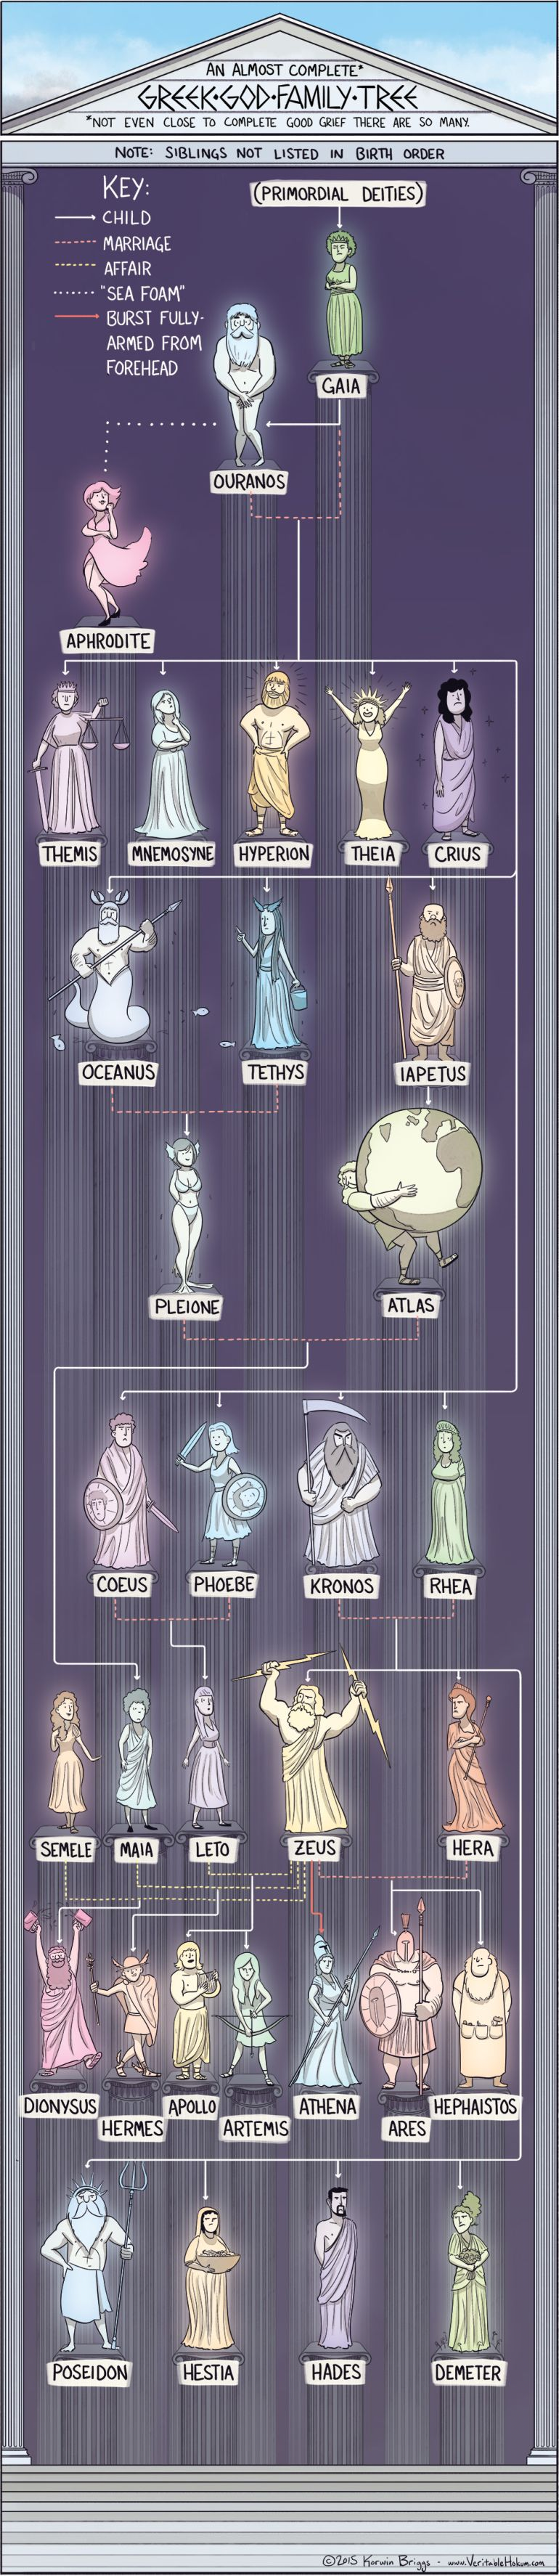 mythology-family-tree-egyptian-greek-norse-gods_2